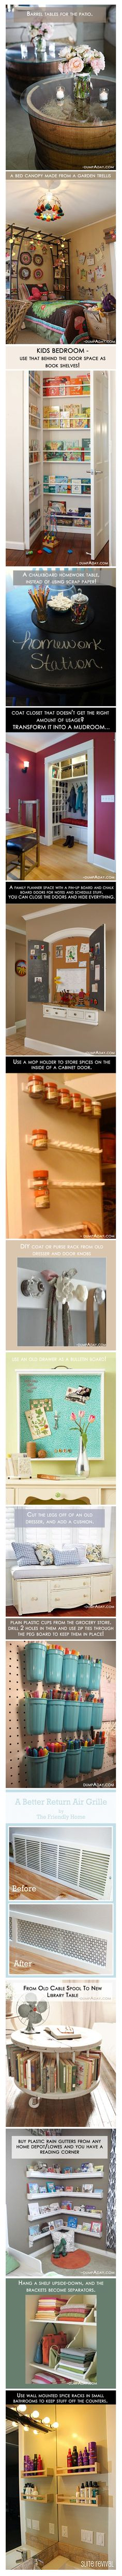 16 Amazing Do It Yourself Home Ideas | Boo Fckm HooBoo Fckm Hoo